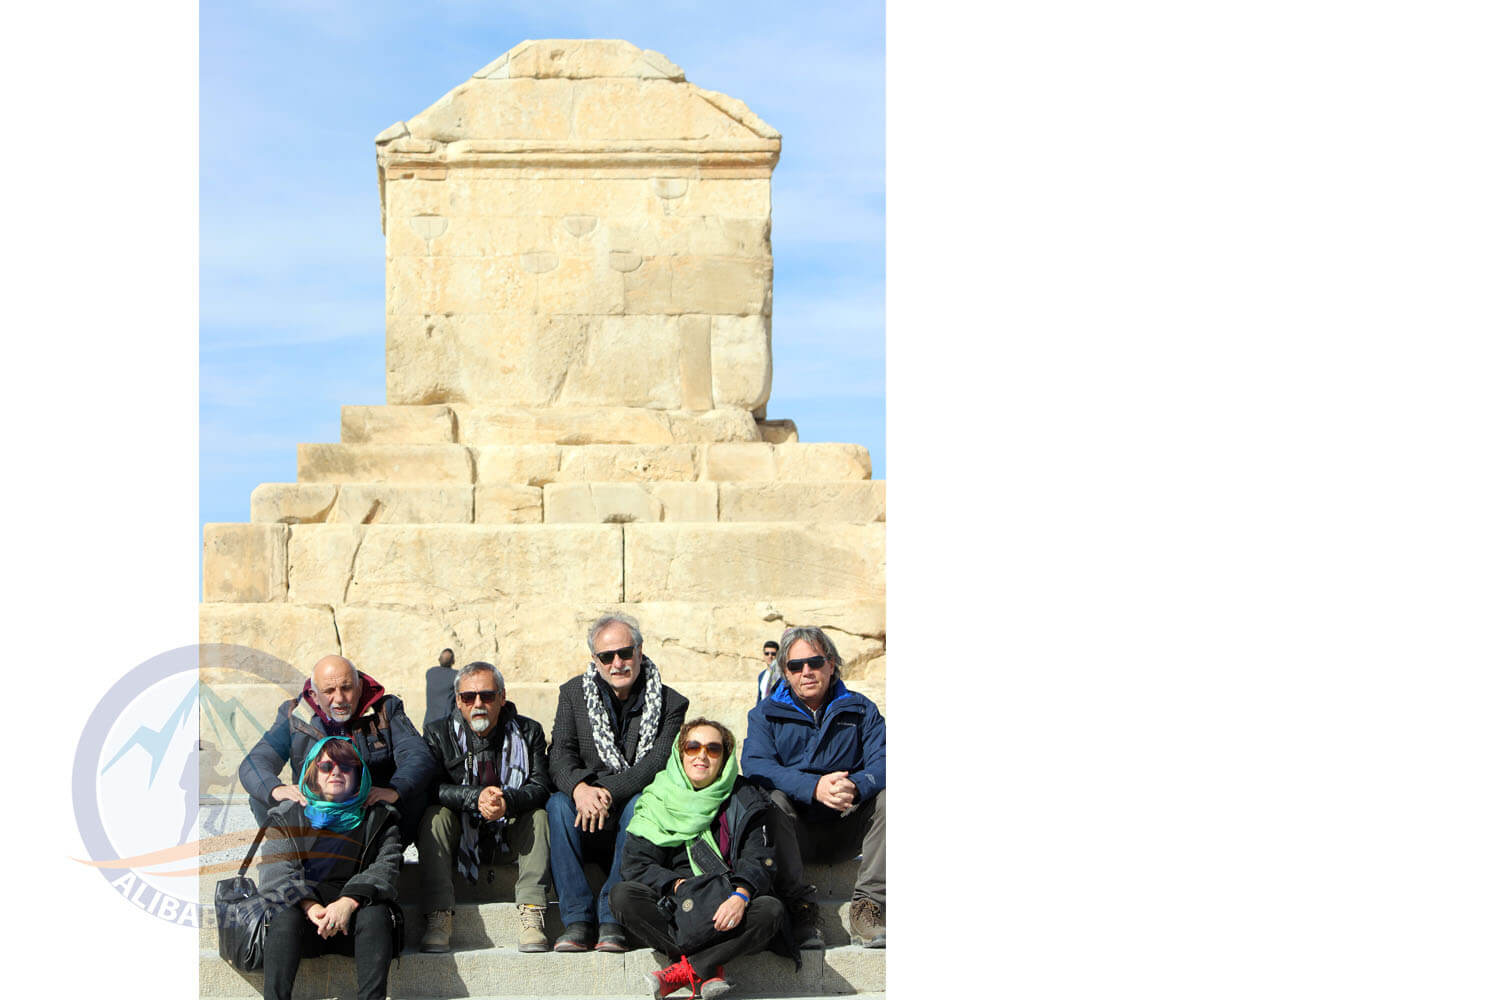 Alibabatrek iran tour packages Tour in iran Persia tour Iran cultural tour Pasargad2